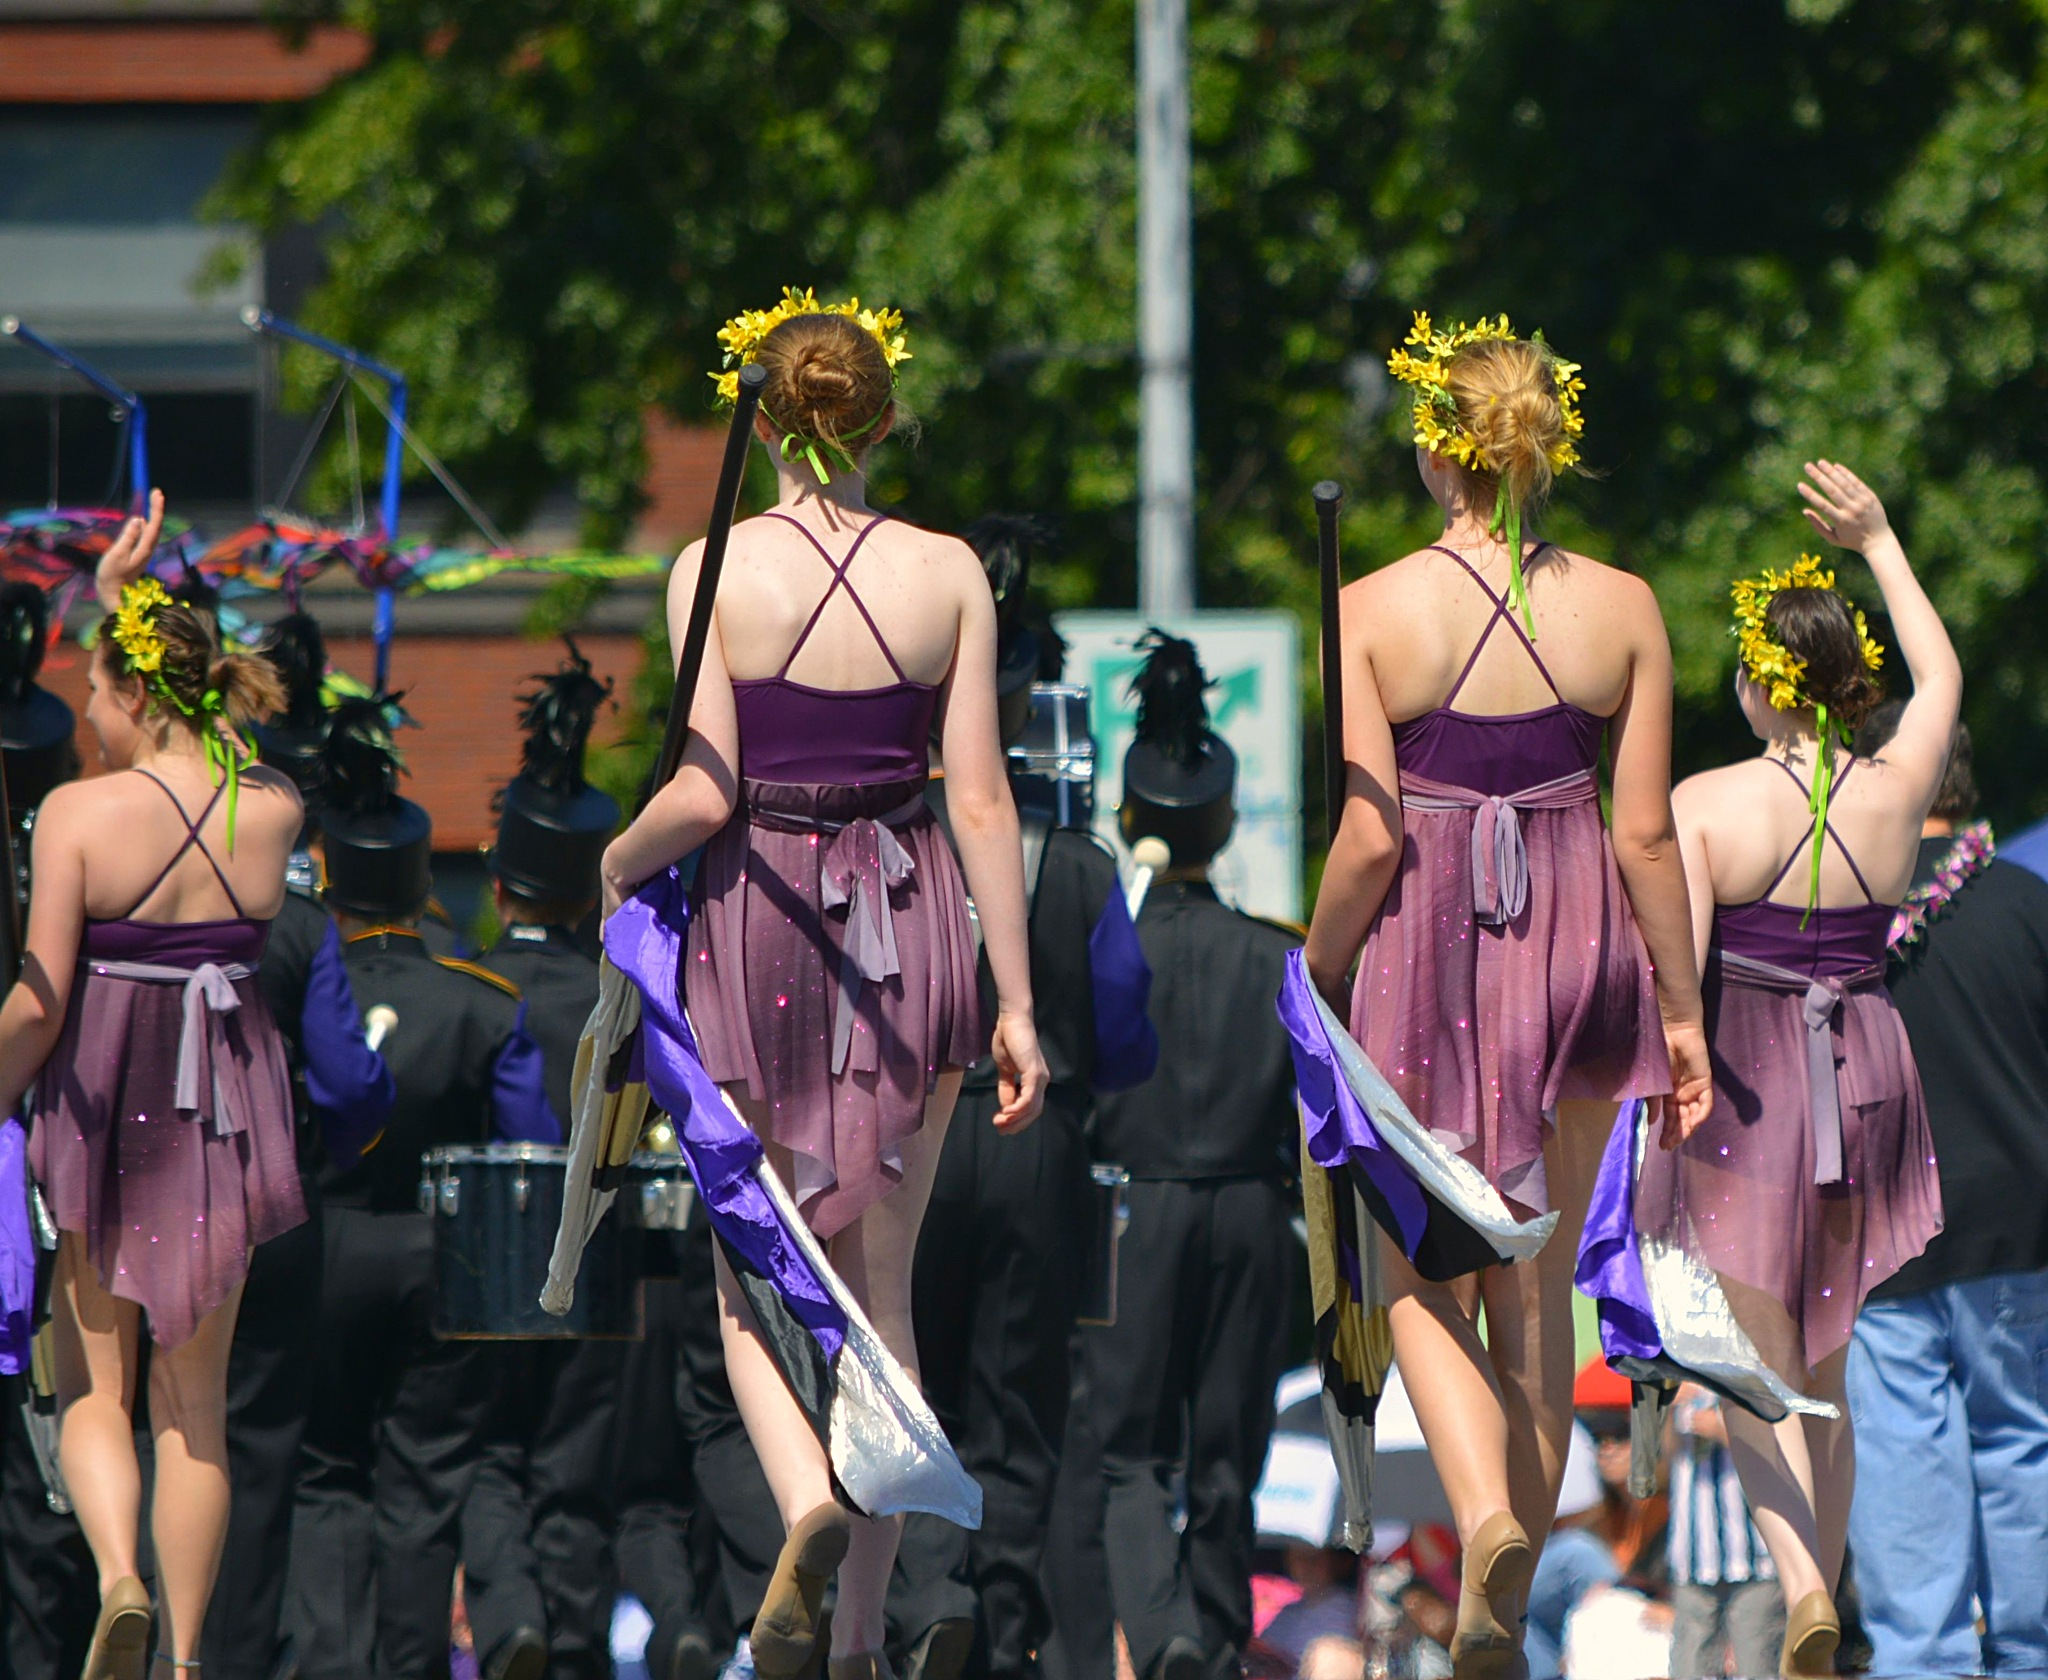 Flag Girls Rear View by pscottwong